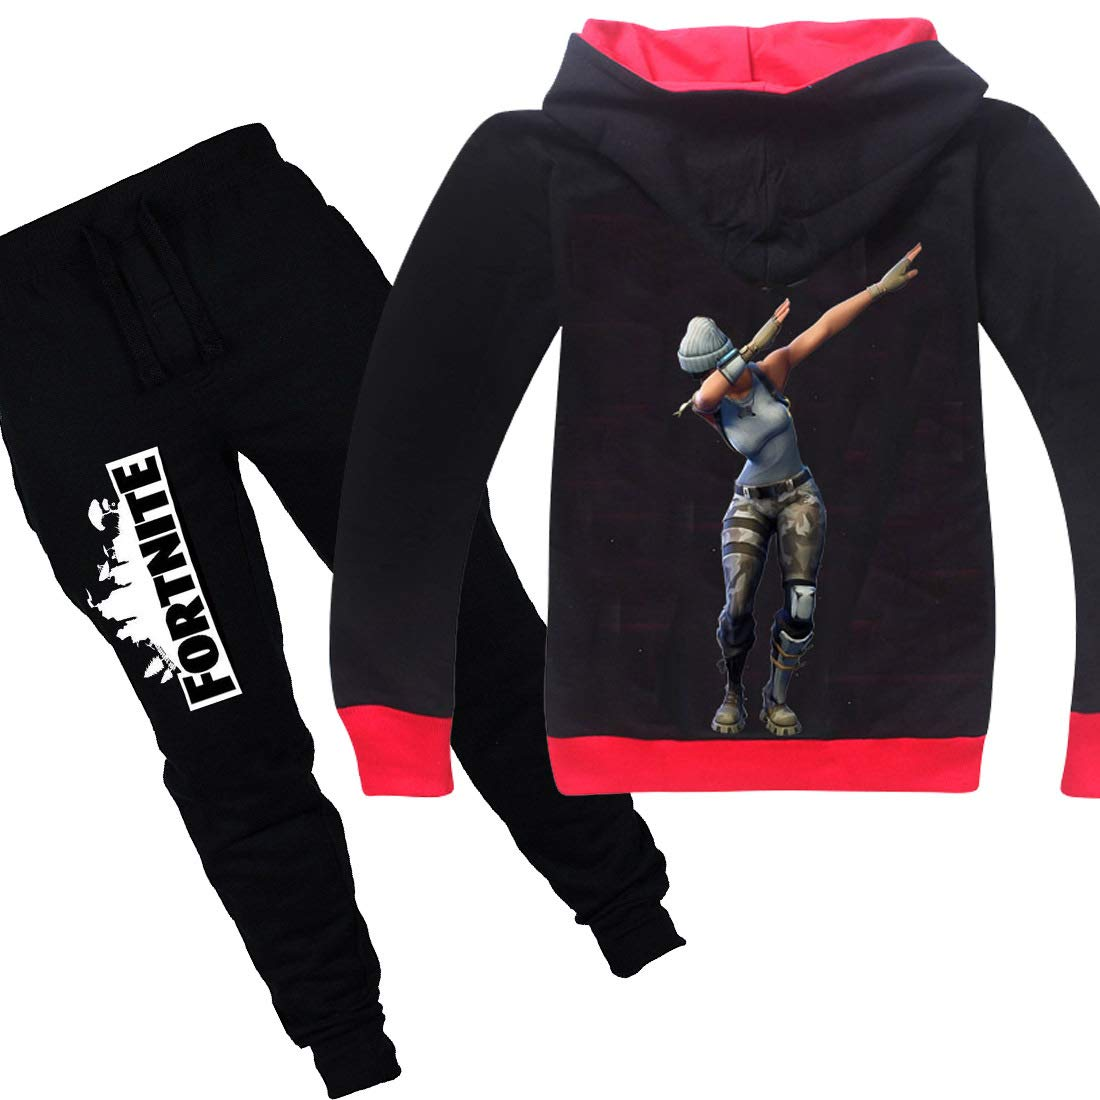 Wazonton Fortnite Zipper Hoodie Set with Long Pants Boys Girls Unisex Sweatshirt Set